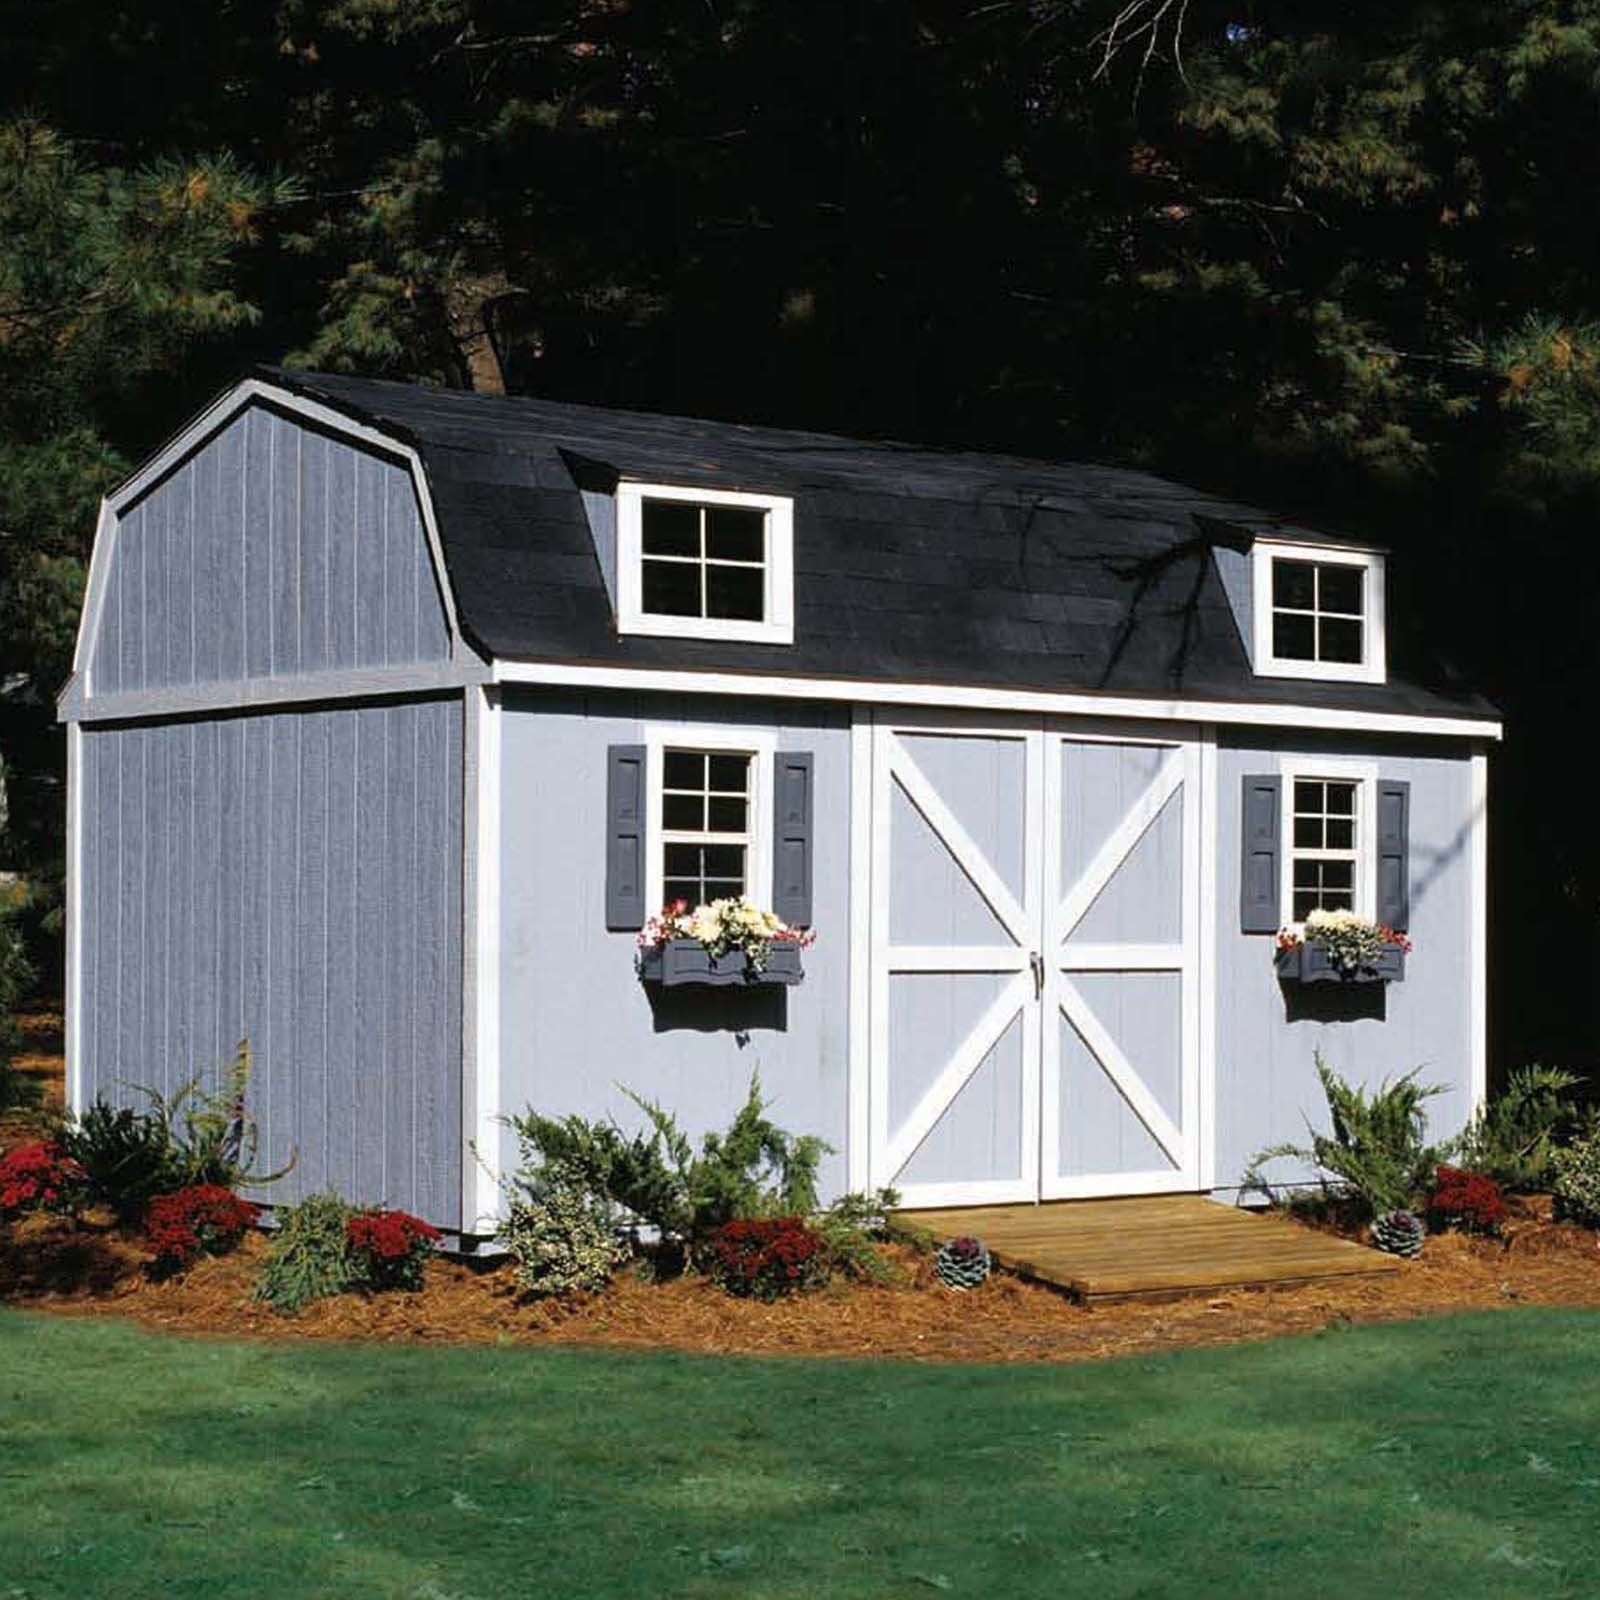 Have To Have It Handy Home Berkley Storage Shed 10 X 16 Ft 2999 98 Wood Storage Sheds Storage Building Kits Building A Shed